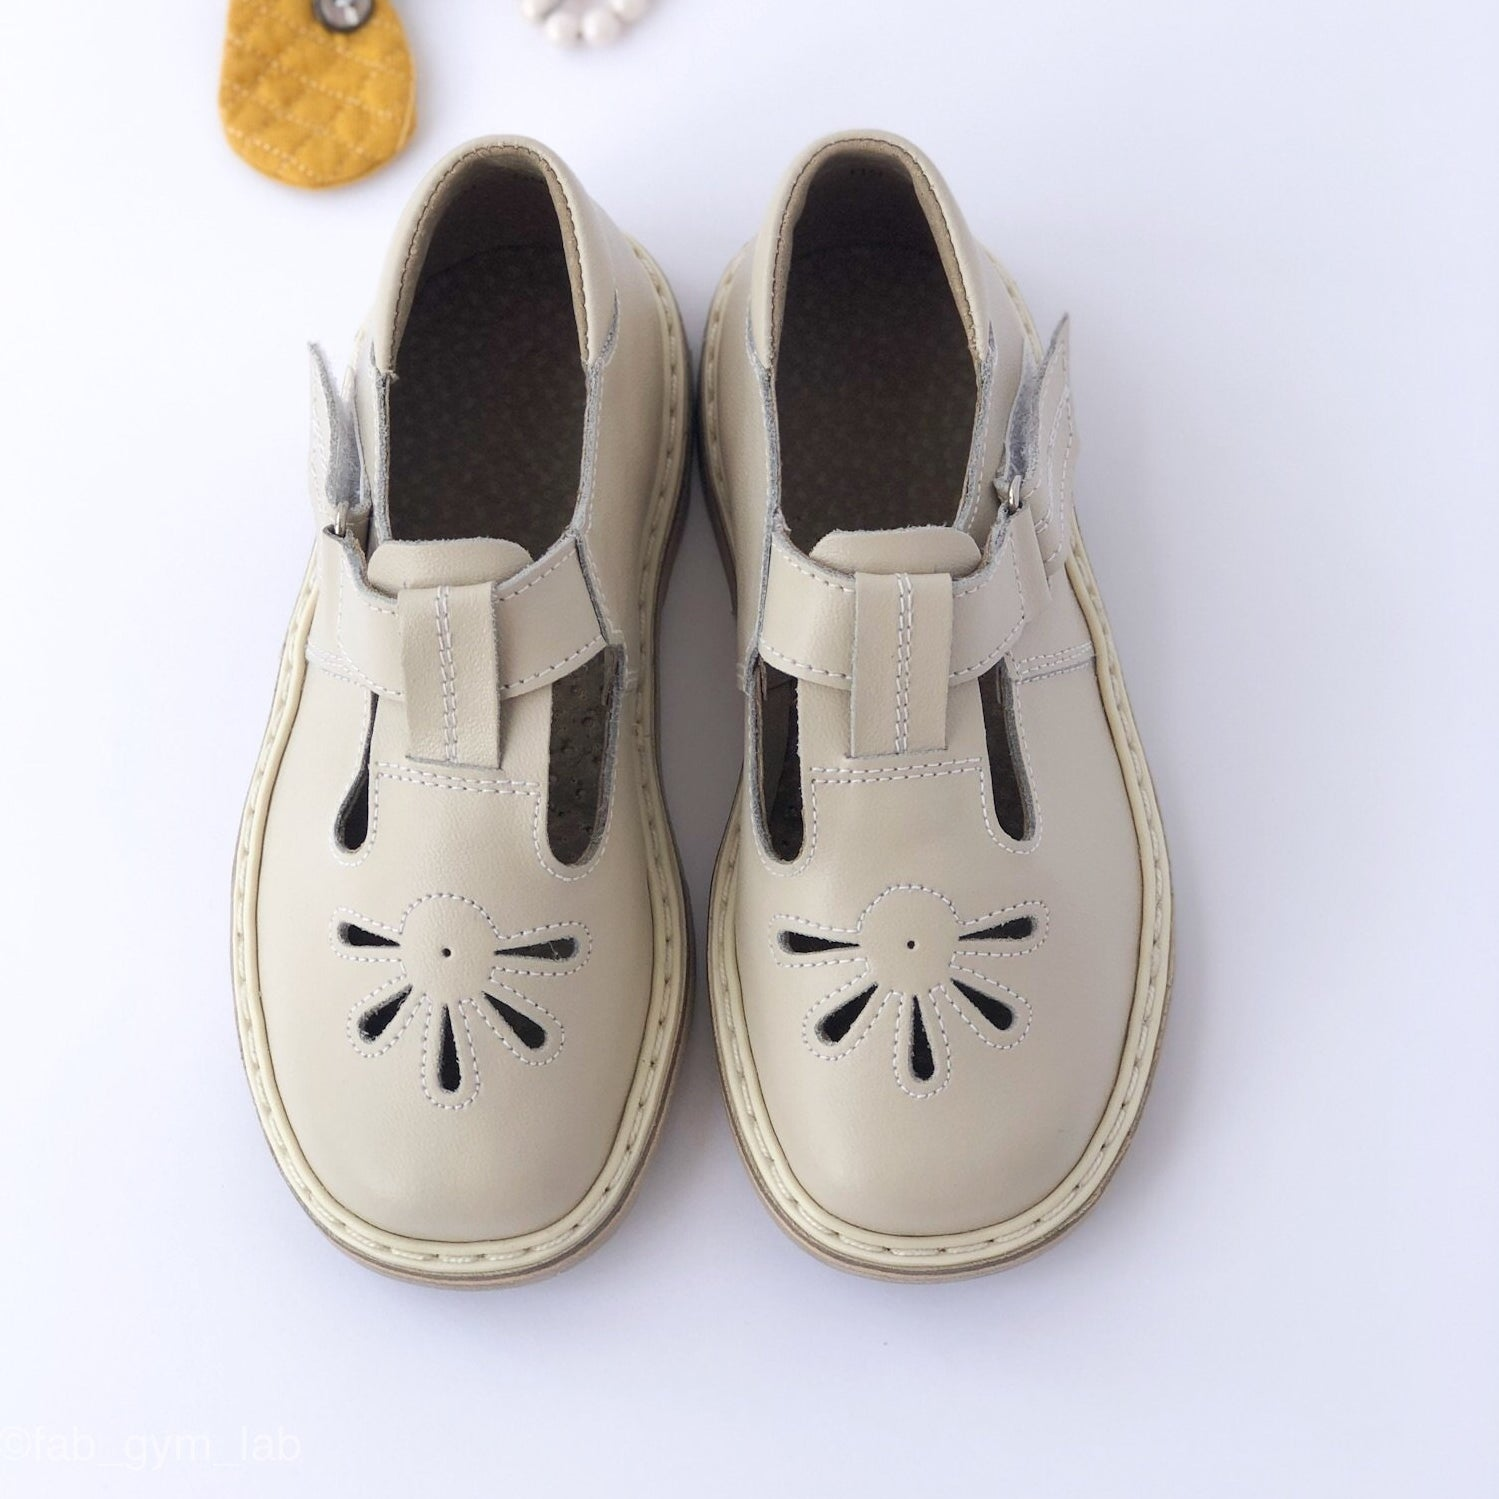 Mary Jane vintage retro girls shoes for school leather , livie luca, monkey feet